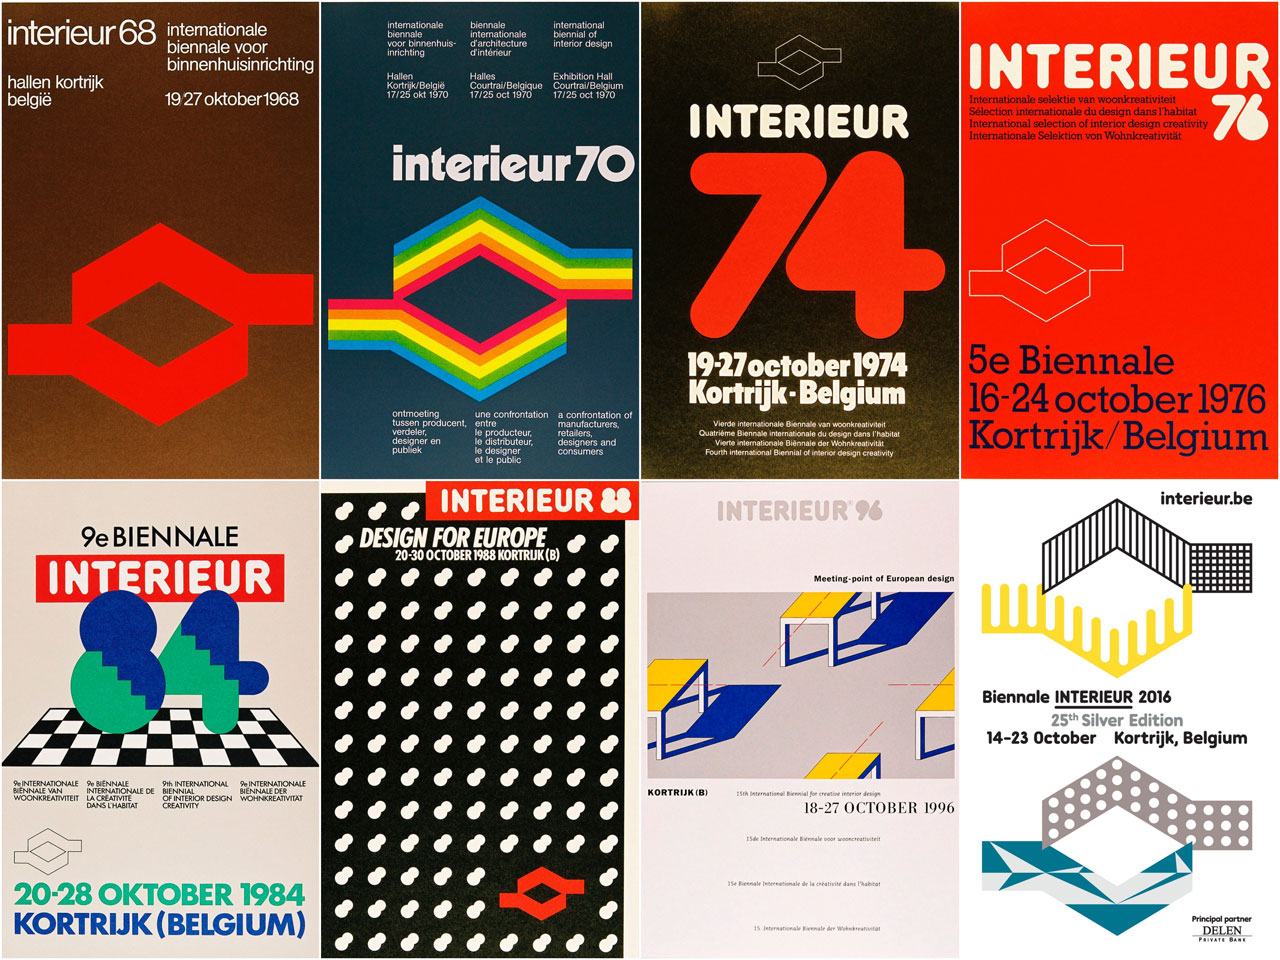 A selection of INTERIEUR posters from 1968 till the present were on display at the exhibition on the occasion ofthe 25th anniversary ofBIENNALE INTERIEUR at the Voka Headquarters in Kortrijk.